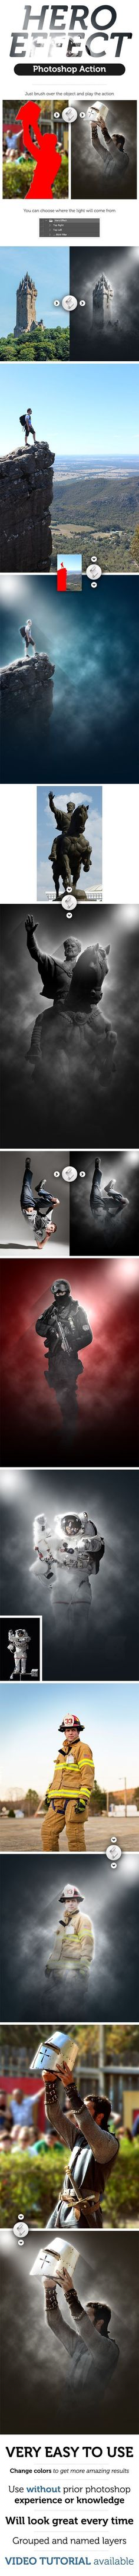 Hero Effect Photoshop Action. Download here: http://graphicriver.net/item/hero-effect-photoshop-action/16515807?ref=ksioks